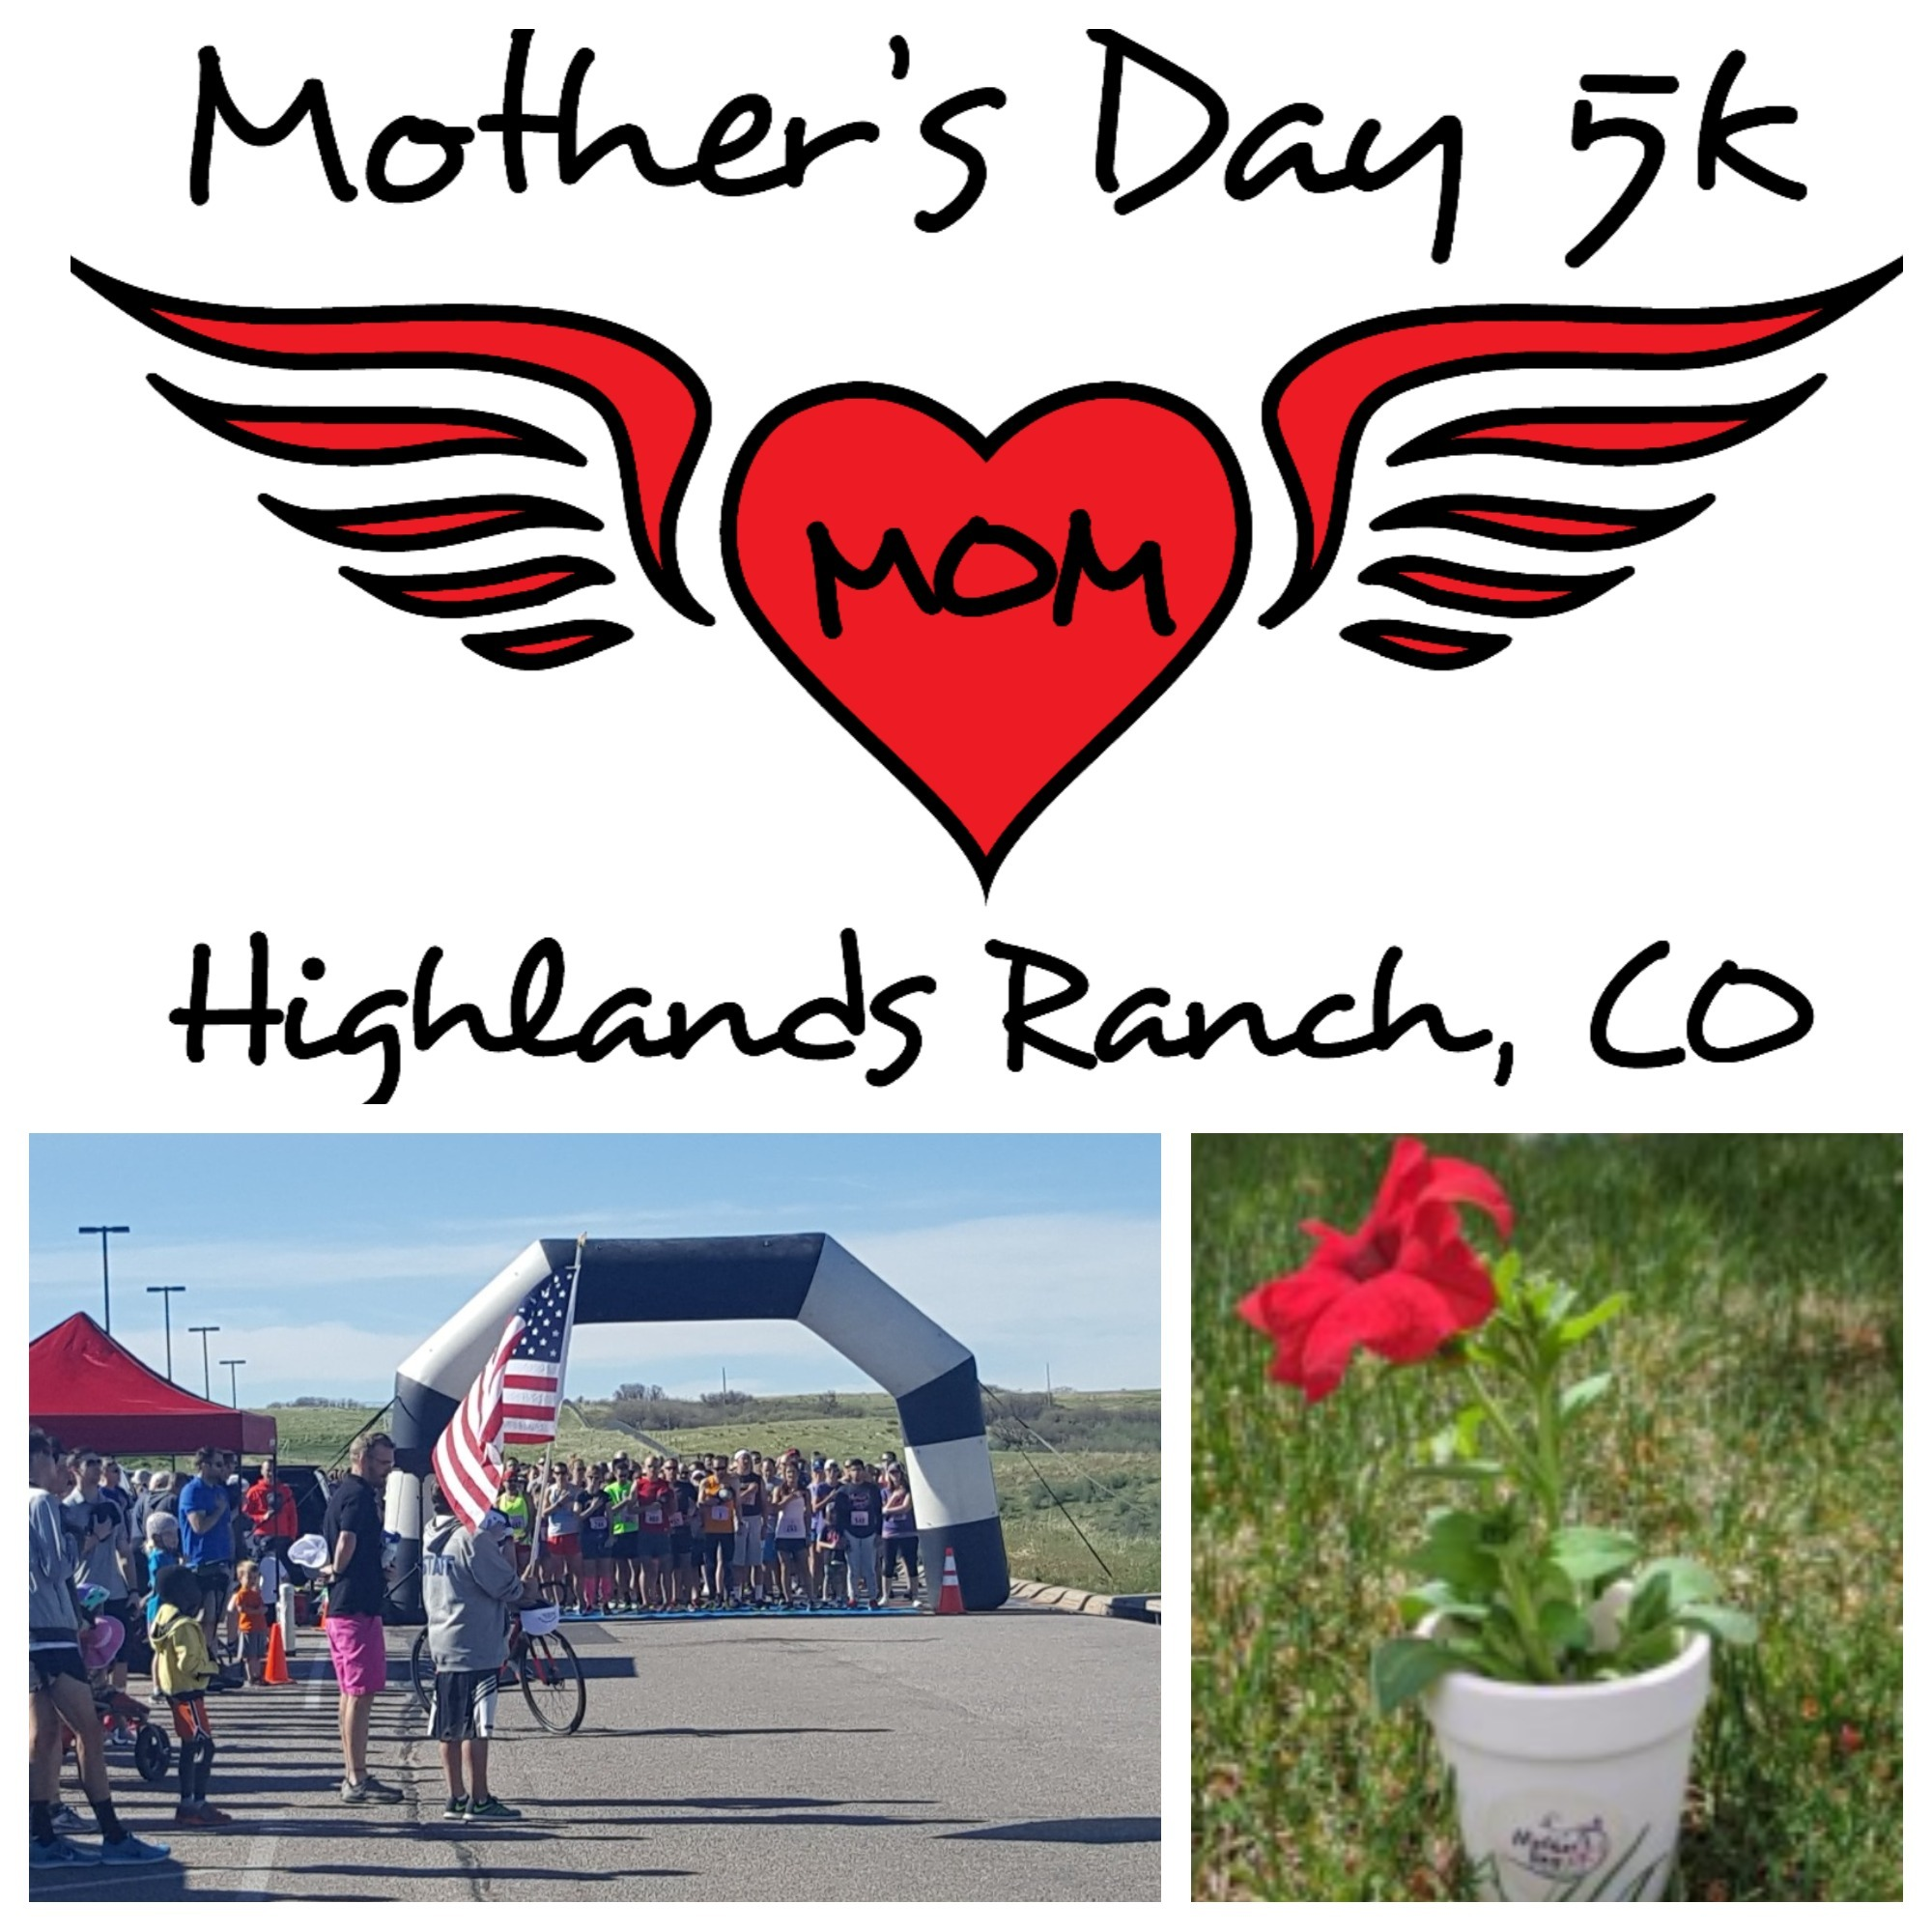 2018 HRCA Mother's Day 5K — Race Roster